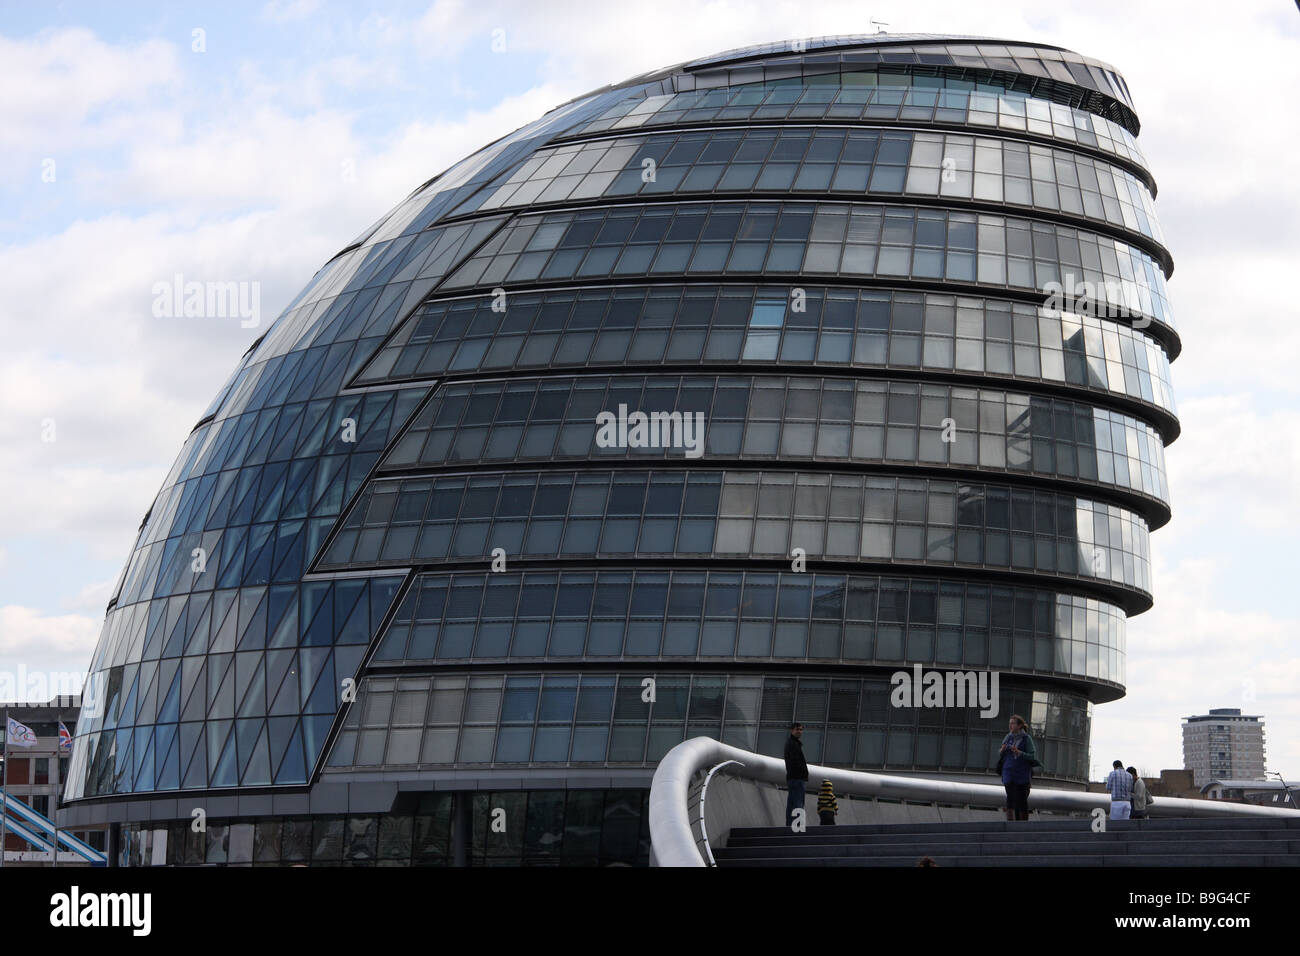 Modern Architecture London England london england uk assembly glass clad building modern architecture